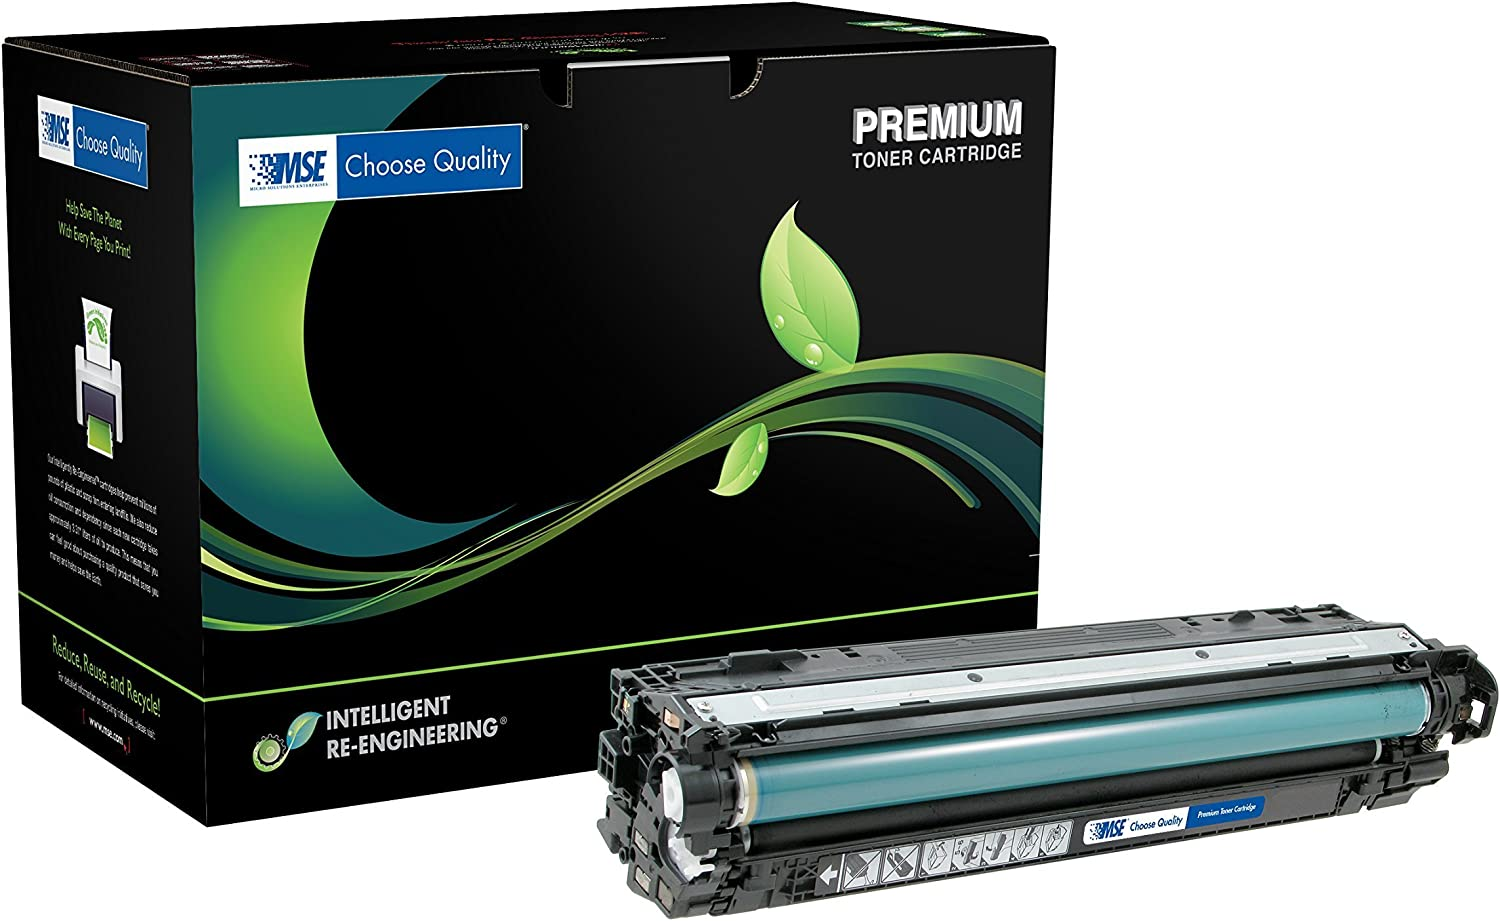 Inksters Remanufactured Toner Cartridge Replacement for HP 5220/5225 Black Toner CE740A (HP 307A) - Compatible with HP Color Laserjet Professional CP5220 CP5225 CP5225DN CP5225N